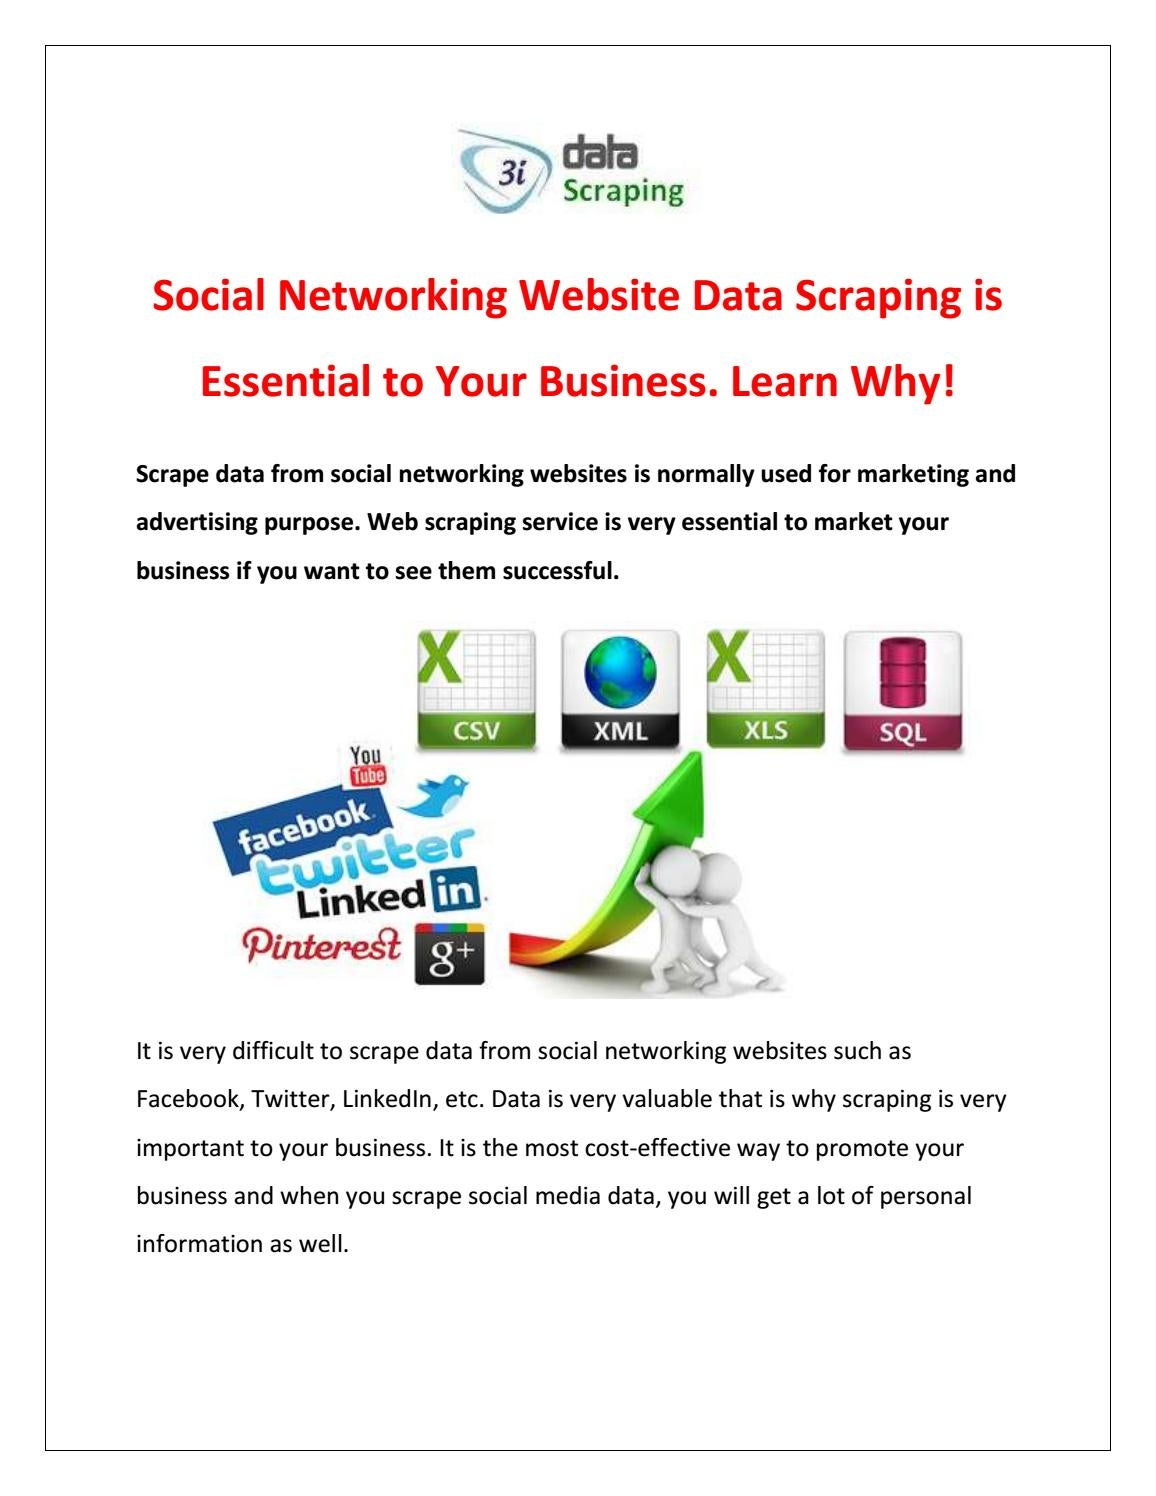 Social Networking Website Data Scraping is Essential to Your